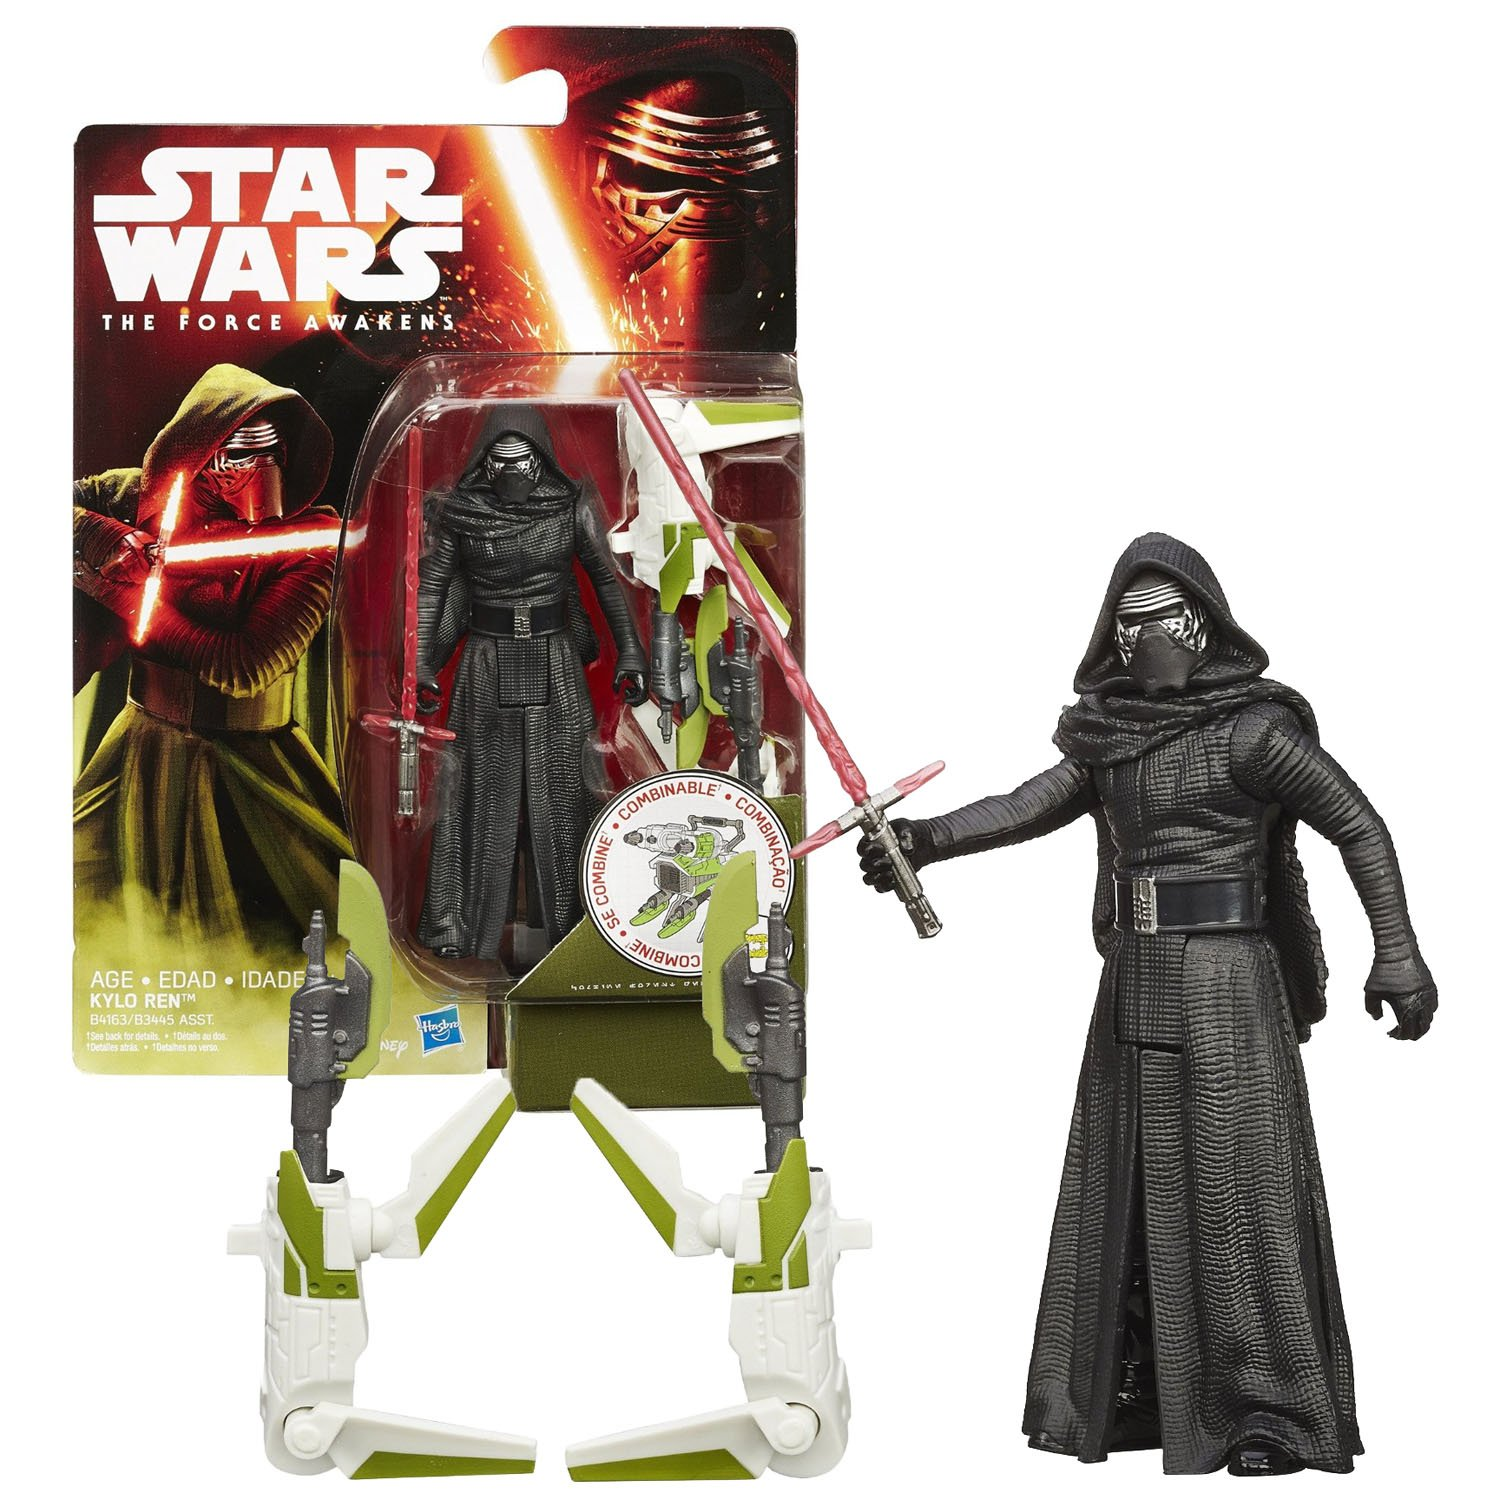 Hasbro Year 2015 Star Wars The Force Awakens Series 4 Inch Tall Action Figure - KYLO REN (B4163) with Red Lightsaber Plus Build A Weapon Part #3